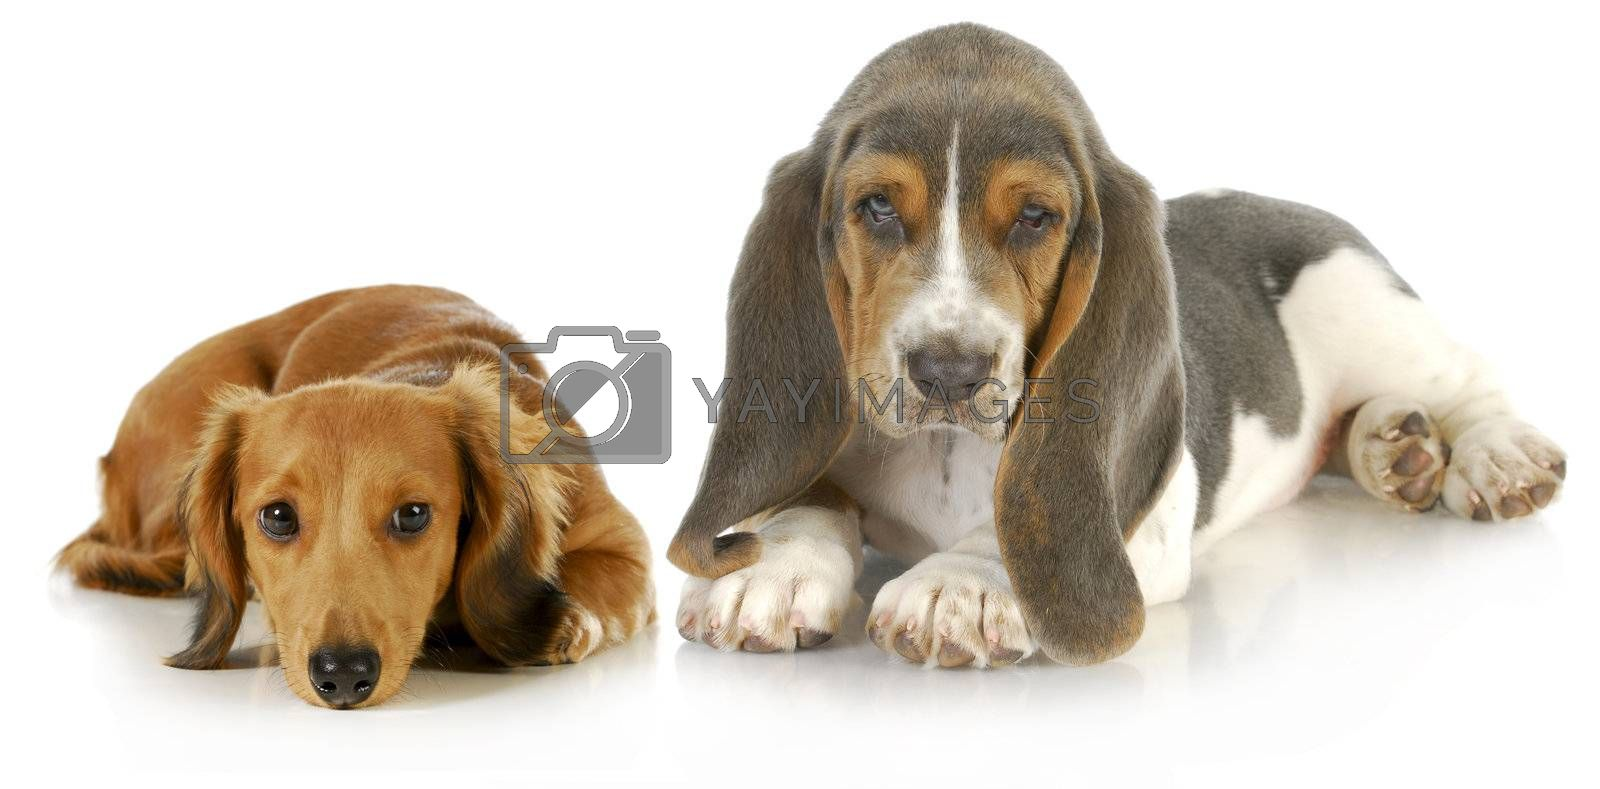 two puppies - basset hound and miniature dachshund puppy laying down looking at viewer on white background